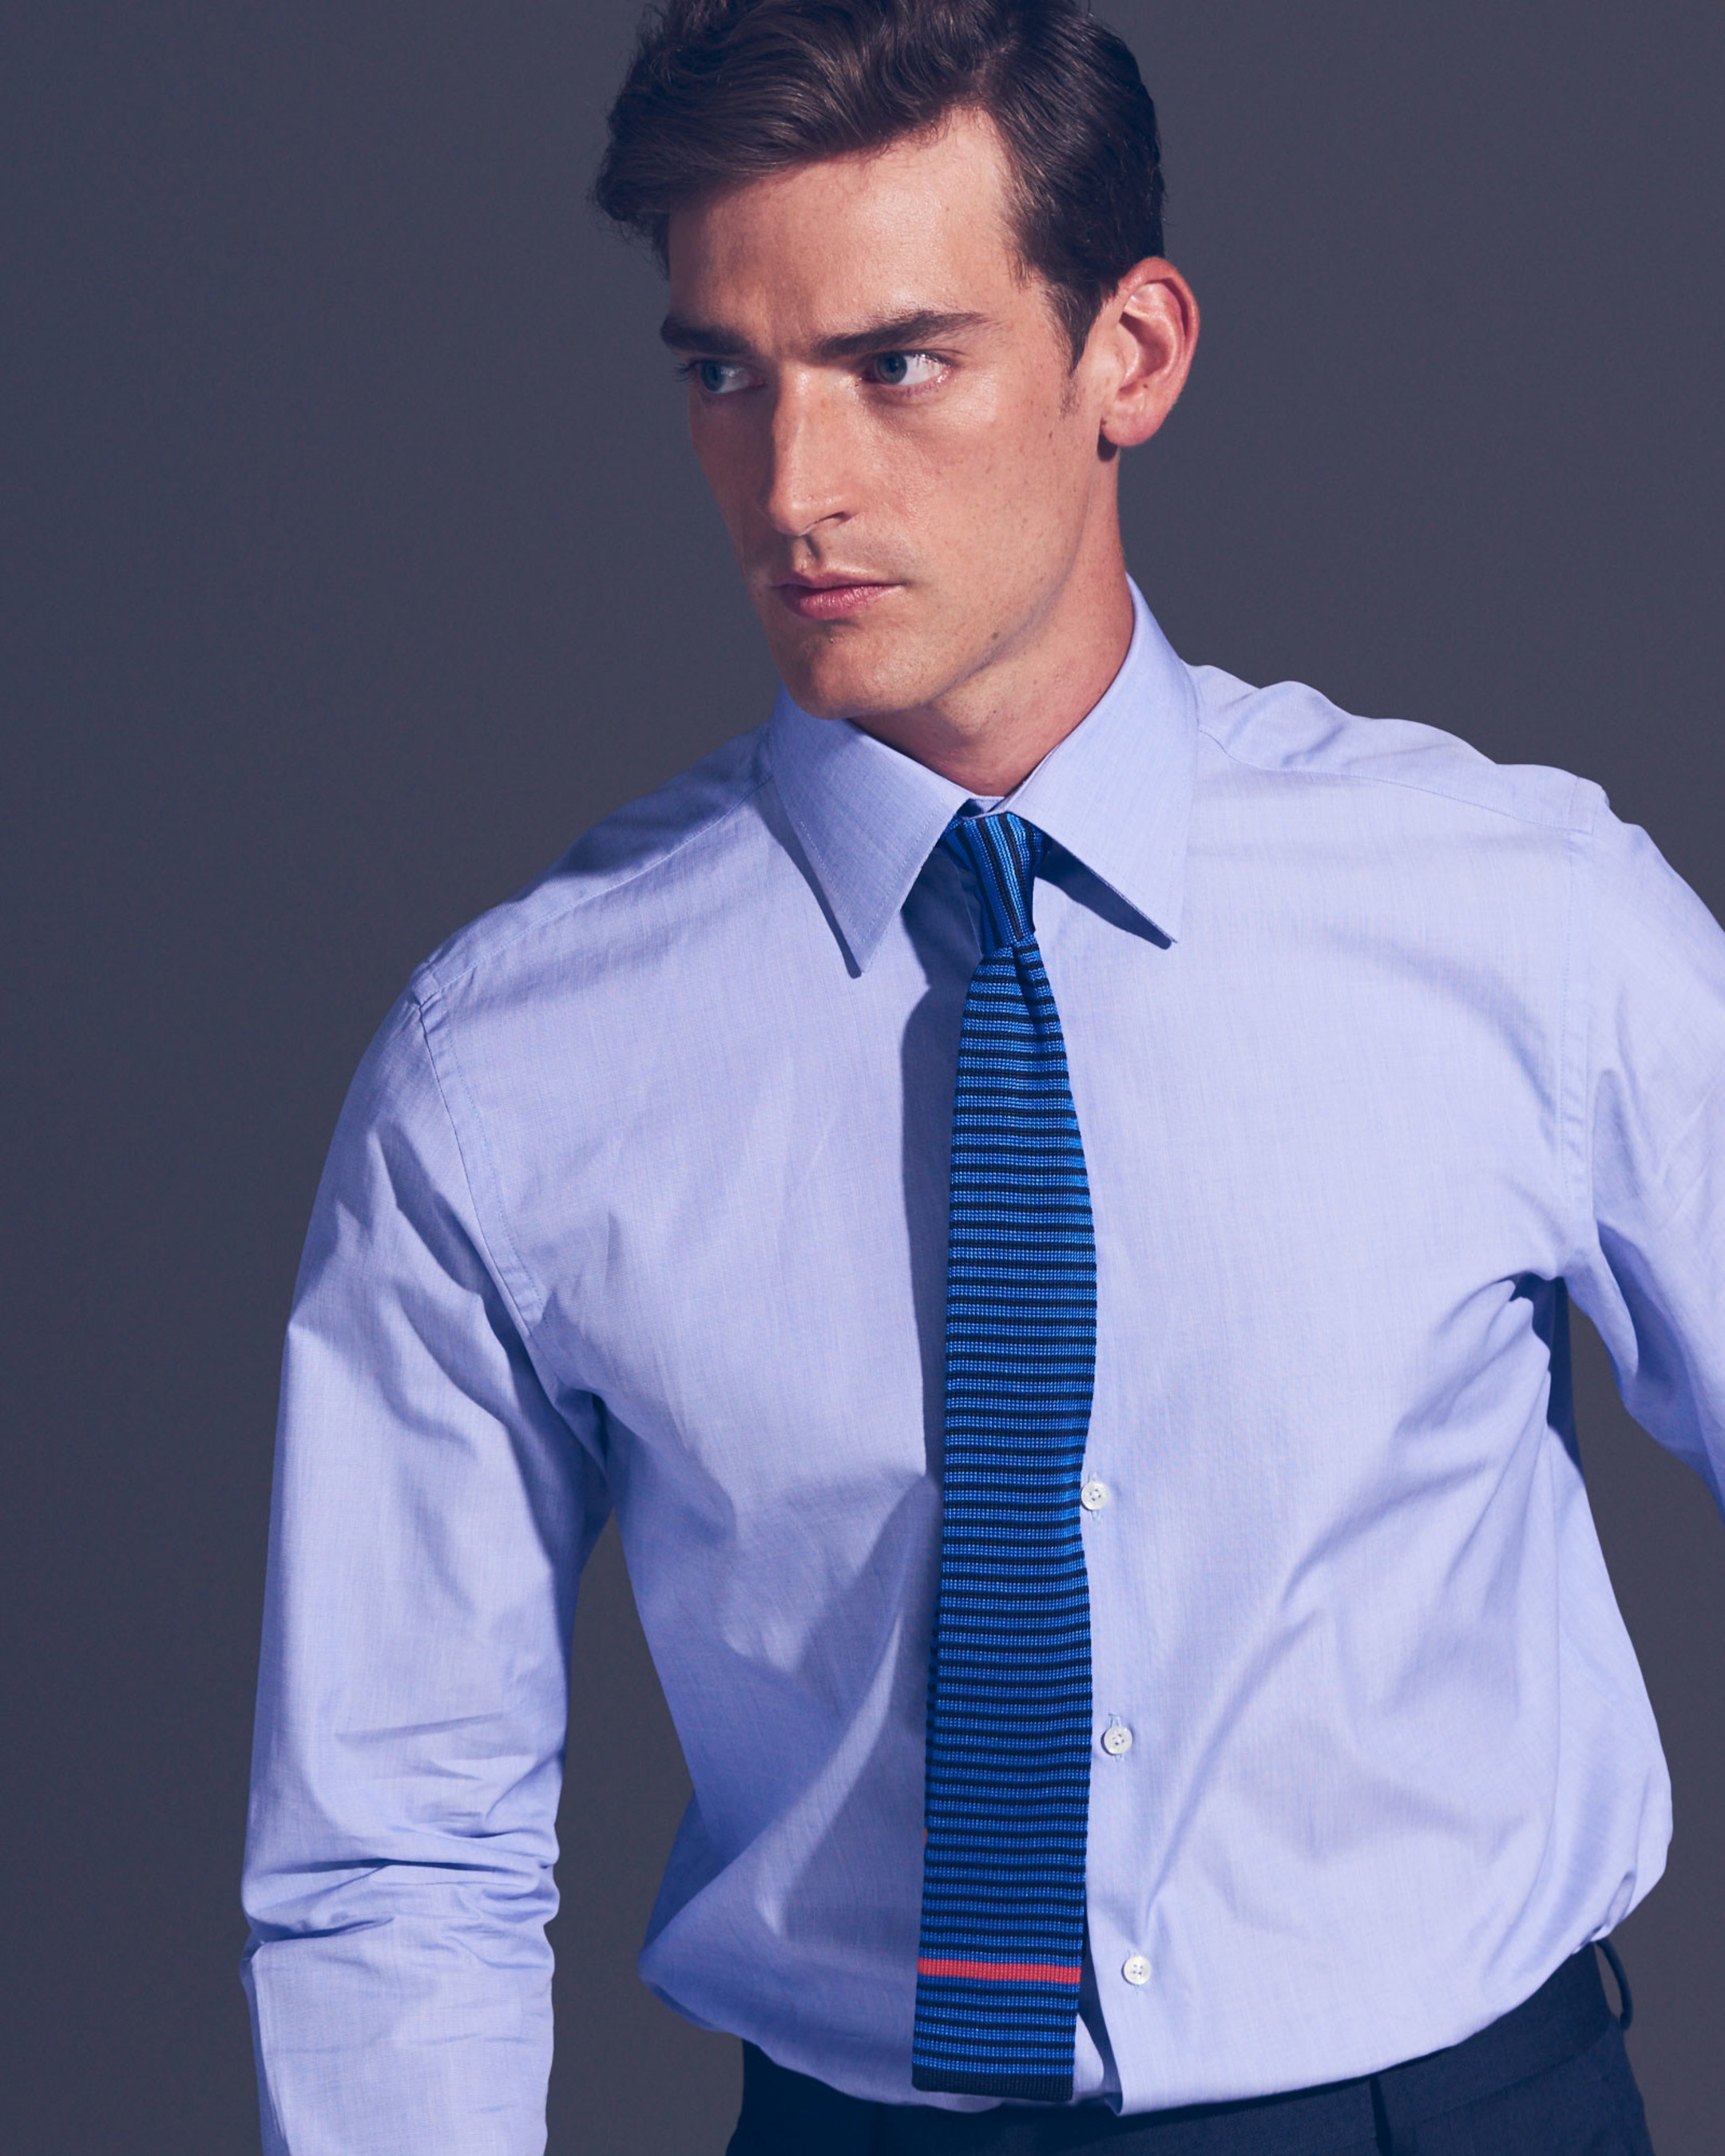 f3d1bcbb Thomas Pink Gets Down To Business With New Dress Shirt Range